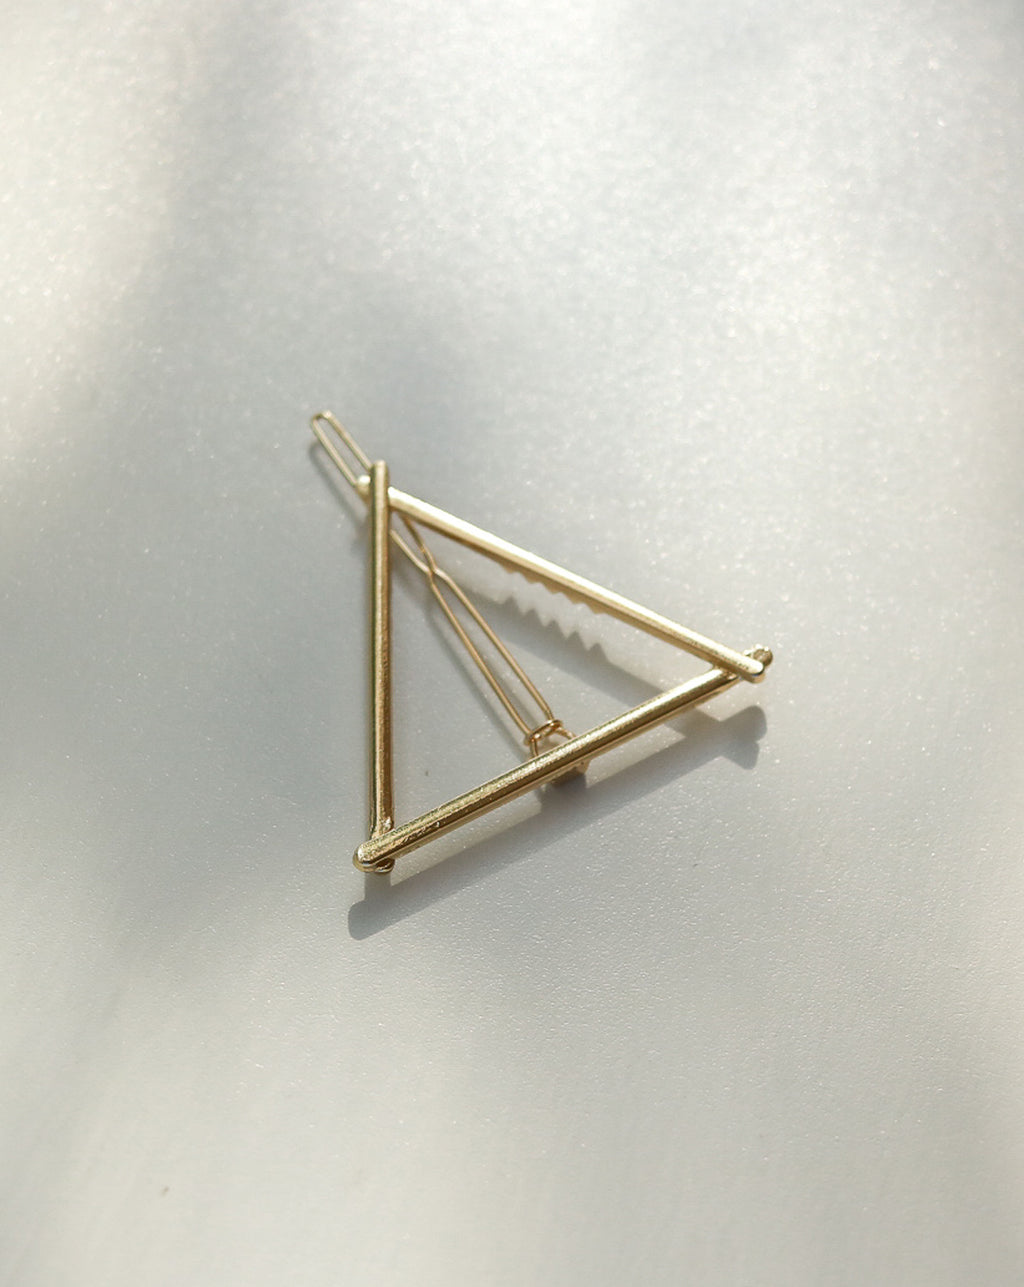 Triangle minimalist hair clip for an effortlessly elegant hairdo - The Hexad